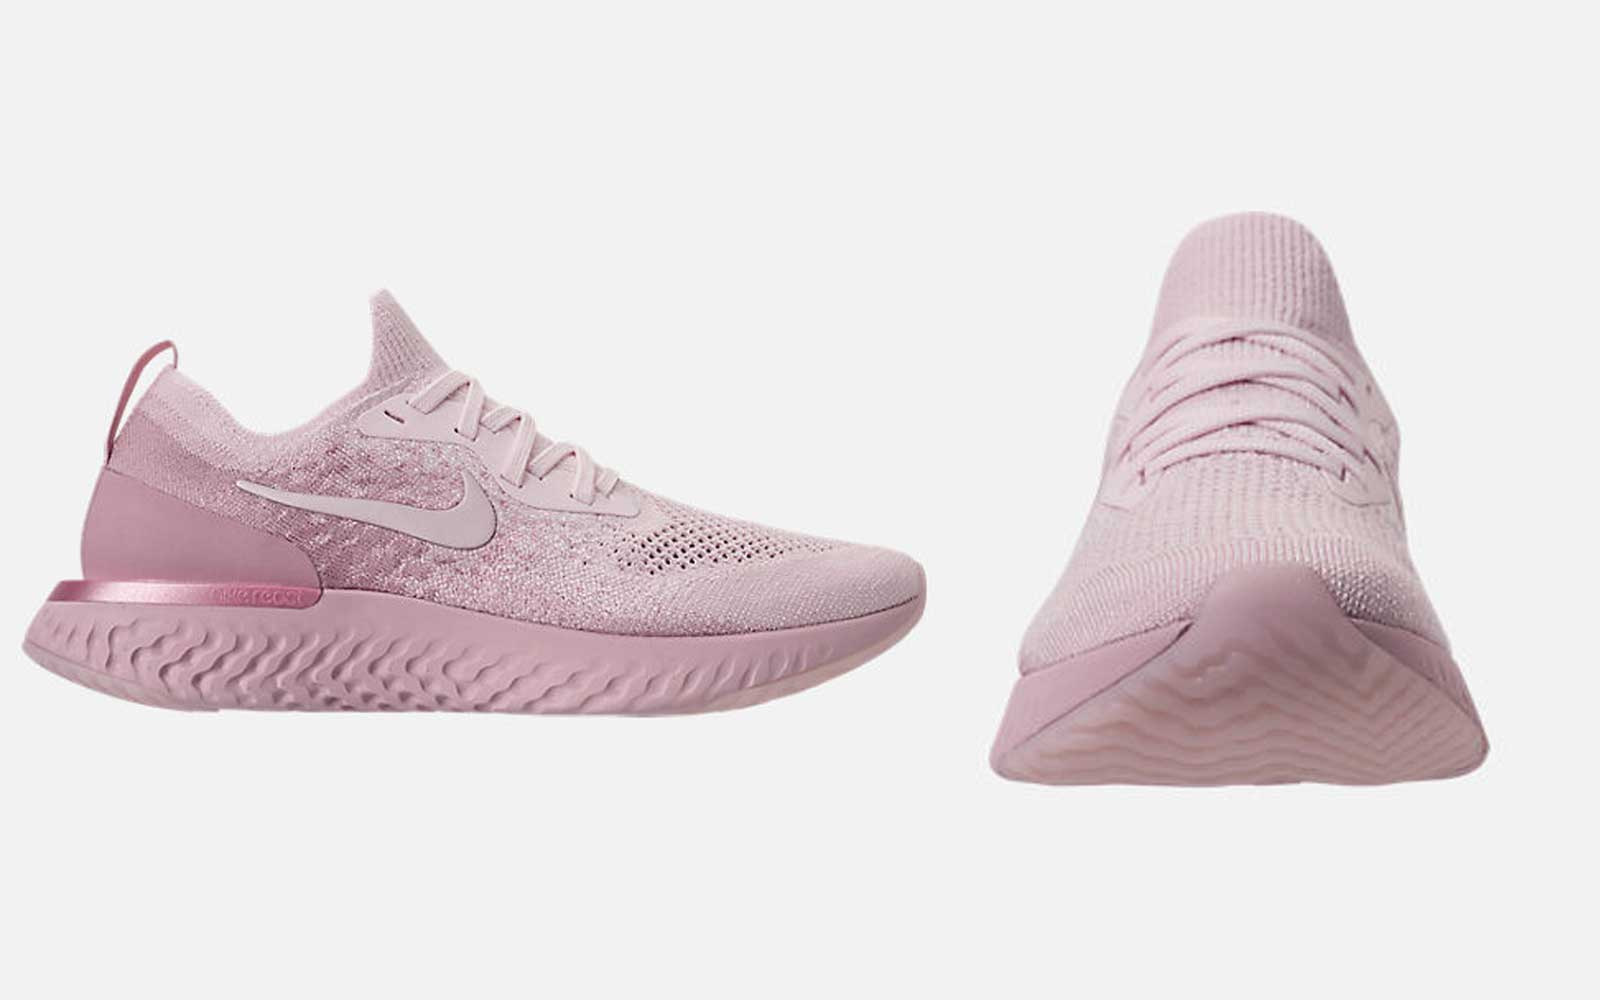 Nike's Most Popular Lightweight Sneakers Now Come in Millennial Pink